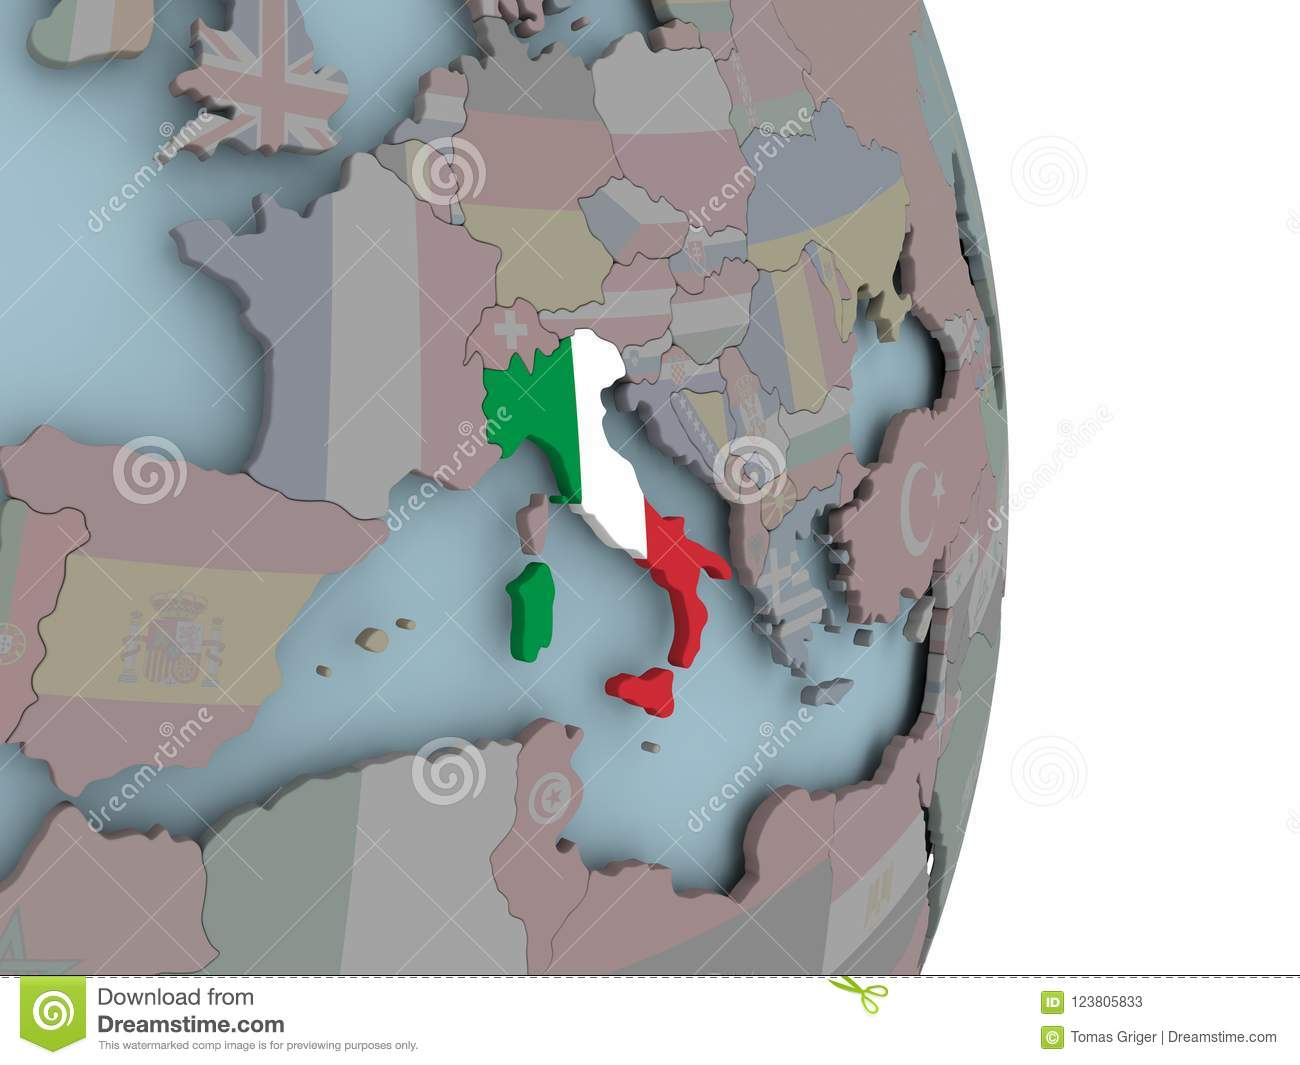 Map Of Italy On Political Globe With Flag Stock Illustration ... Globe Map Of Italy on globe map of russia, globe map of north america, globe map of california, globe map austria, globe map of japan, globe map of nepal, globe map of venezuela, globe map greece, globe map of south america, globe map of new zealand, globe map of malaysia, globe map of israel, globe map of netherlands, globe map of united states, globe map of pakistan, globe map of yemen, globe map of azerbaijan, globe map of norway, globe map of africa, globe map france,